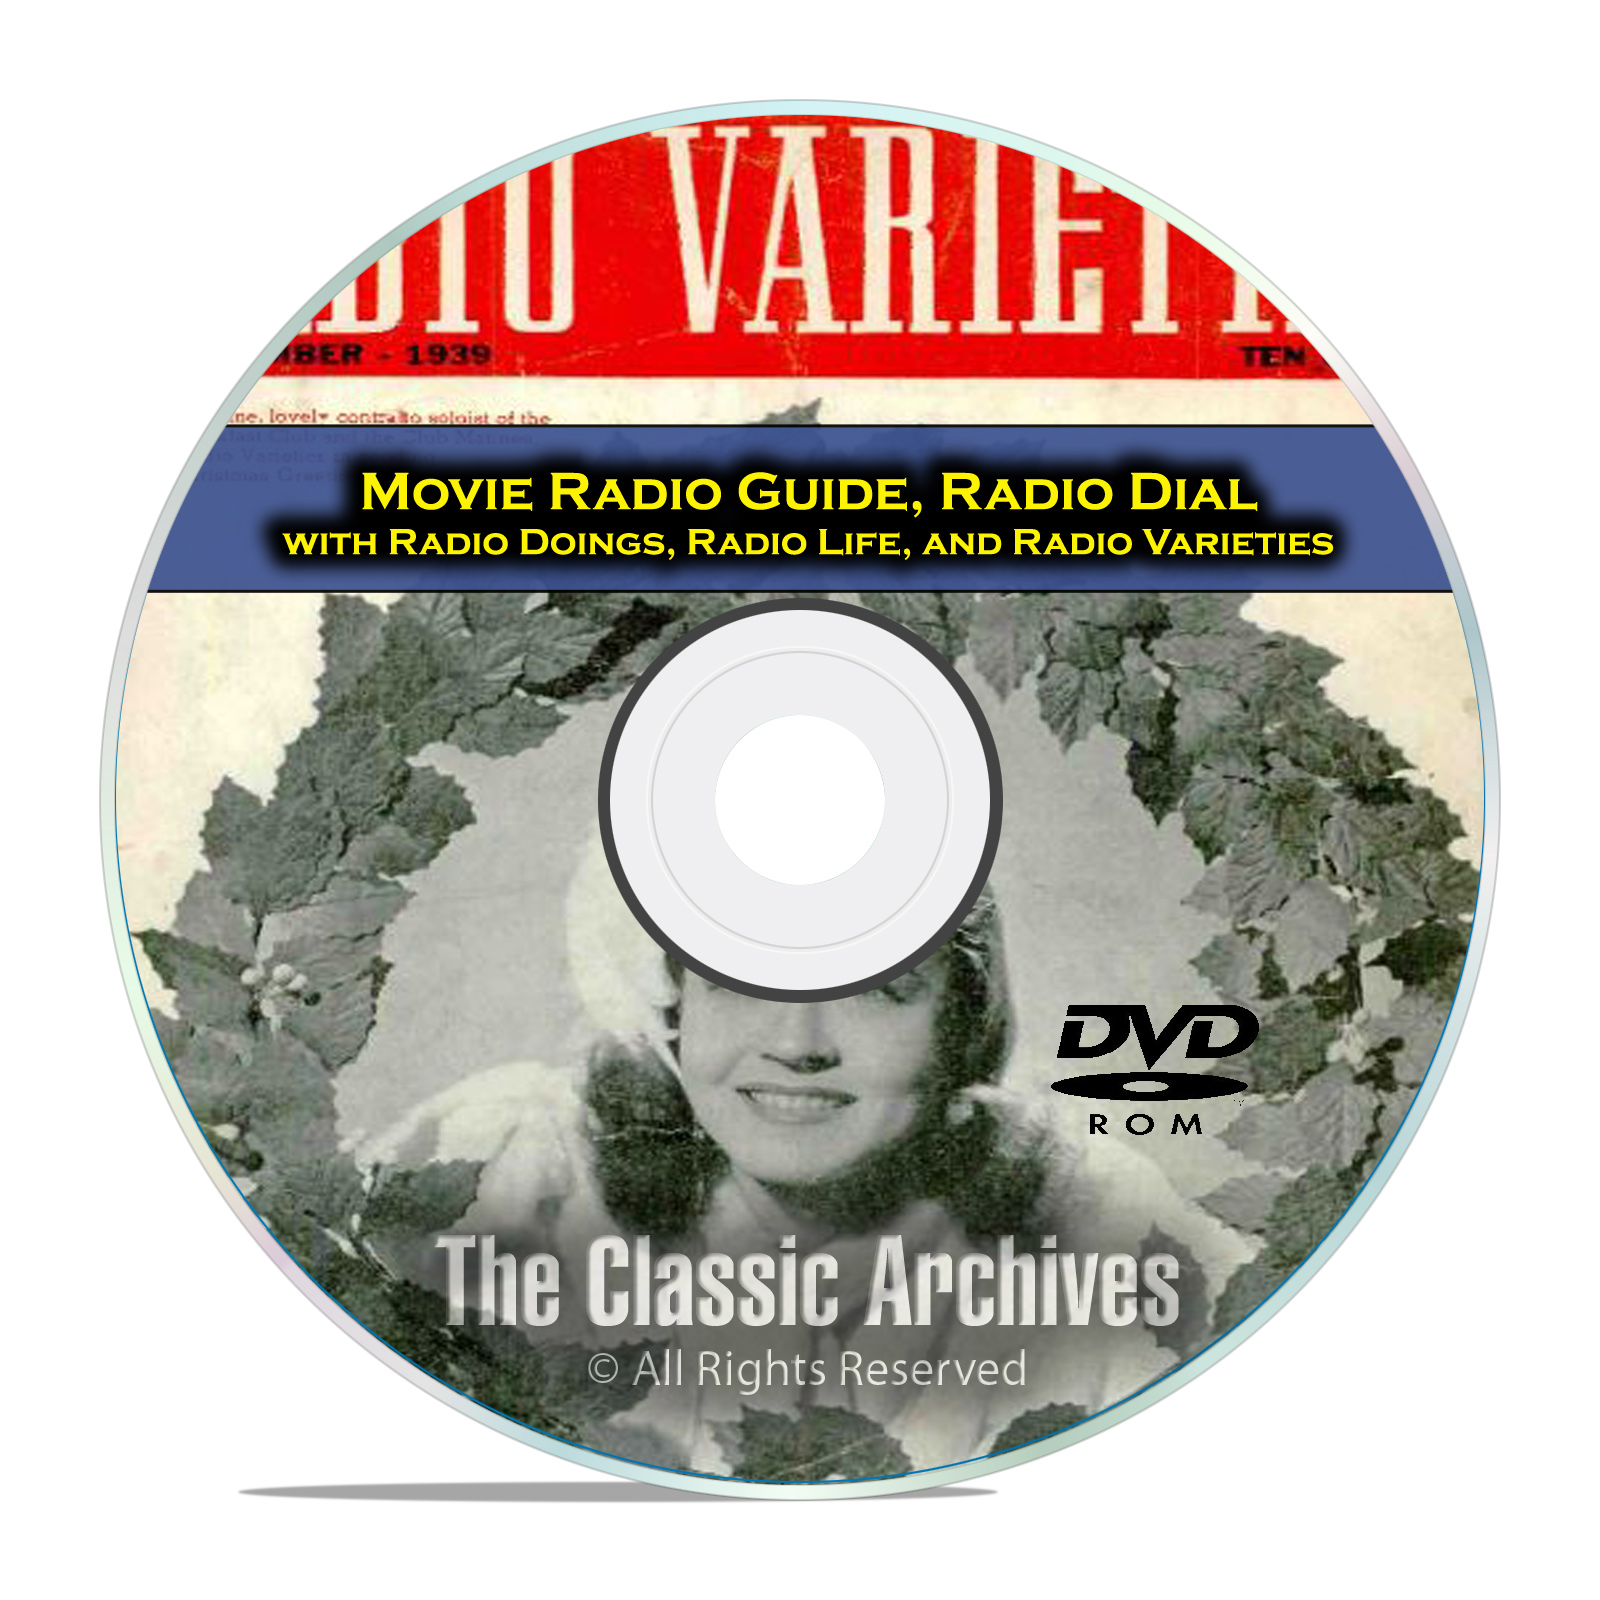 Movie Radio Guide, Radio Dial, Doings, 463 Old Time Radio Magazines PDF DVD